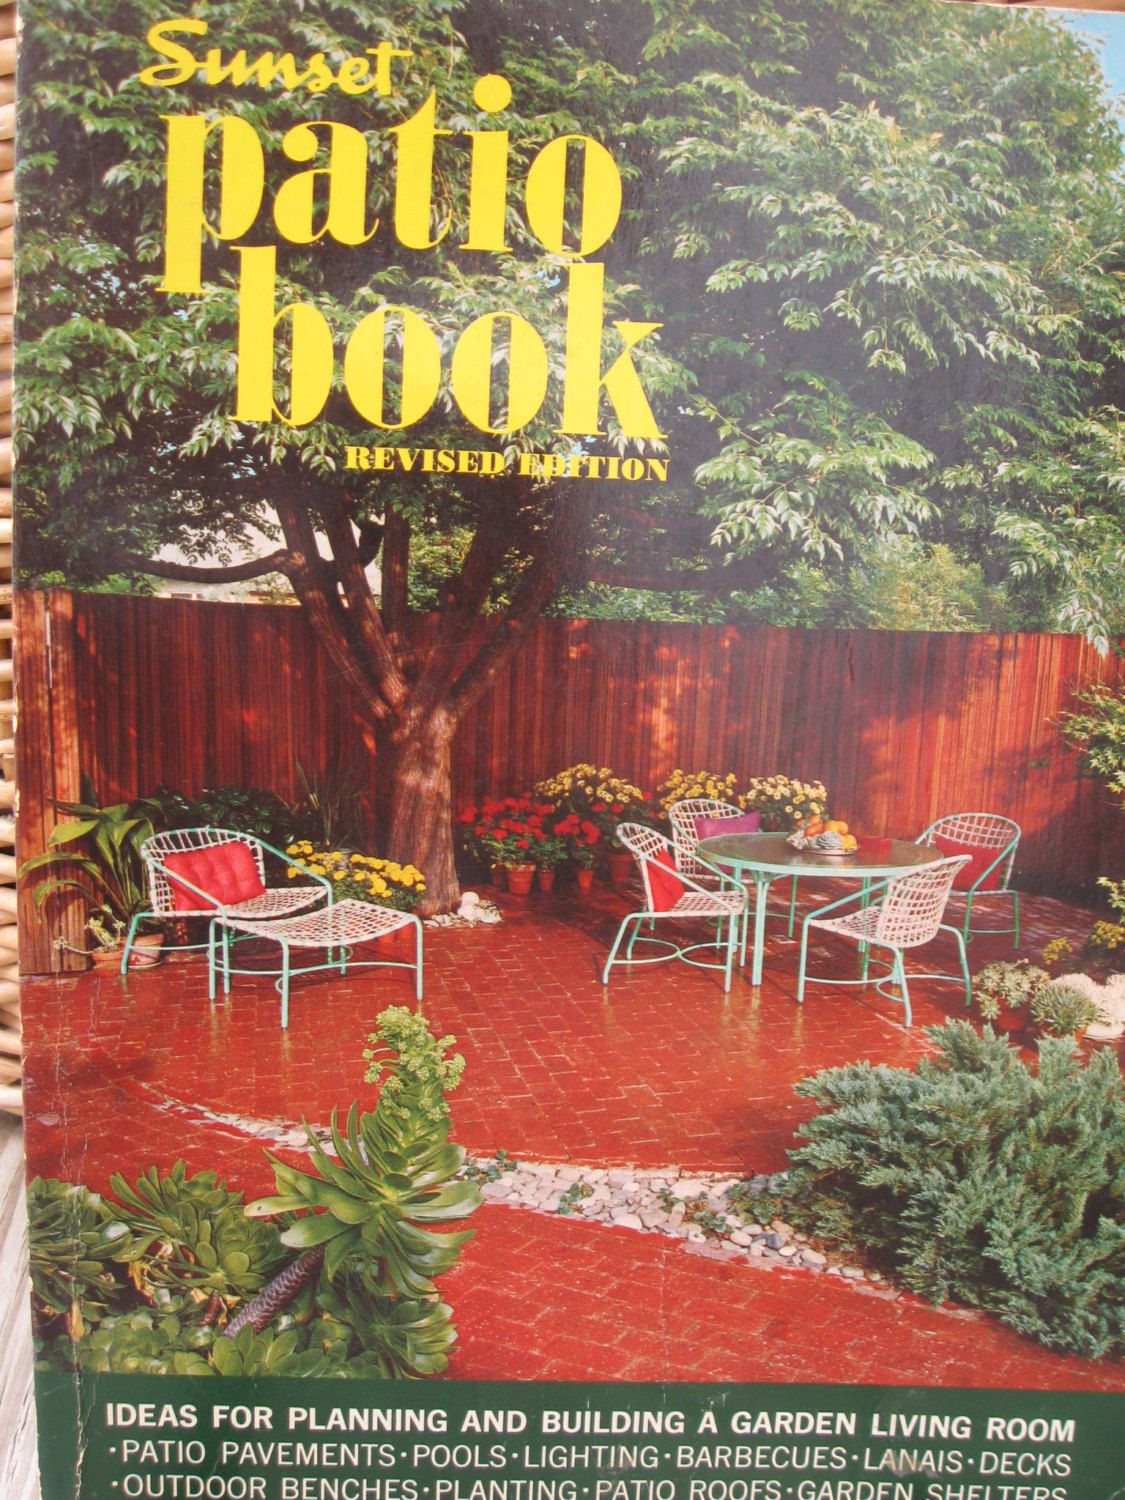 sunset patio book home decor decorating mid century modern architecture atomic house eames era furniture garden design